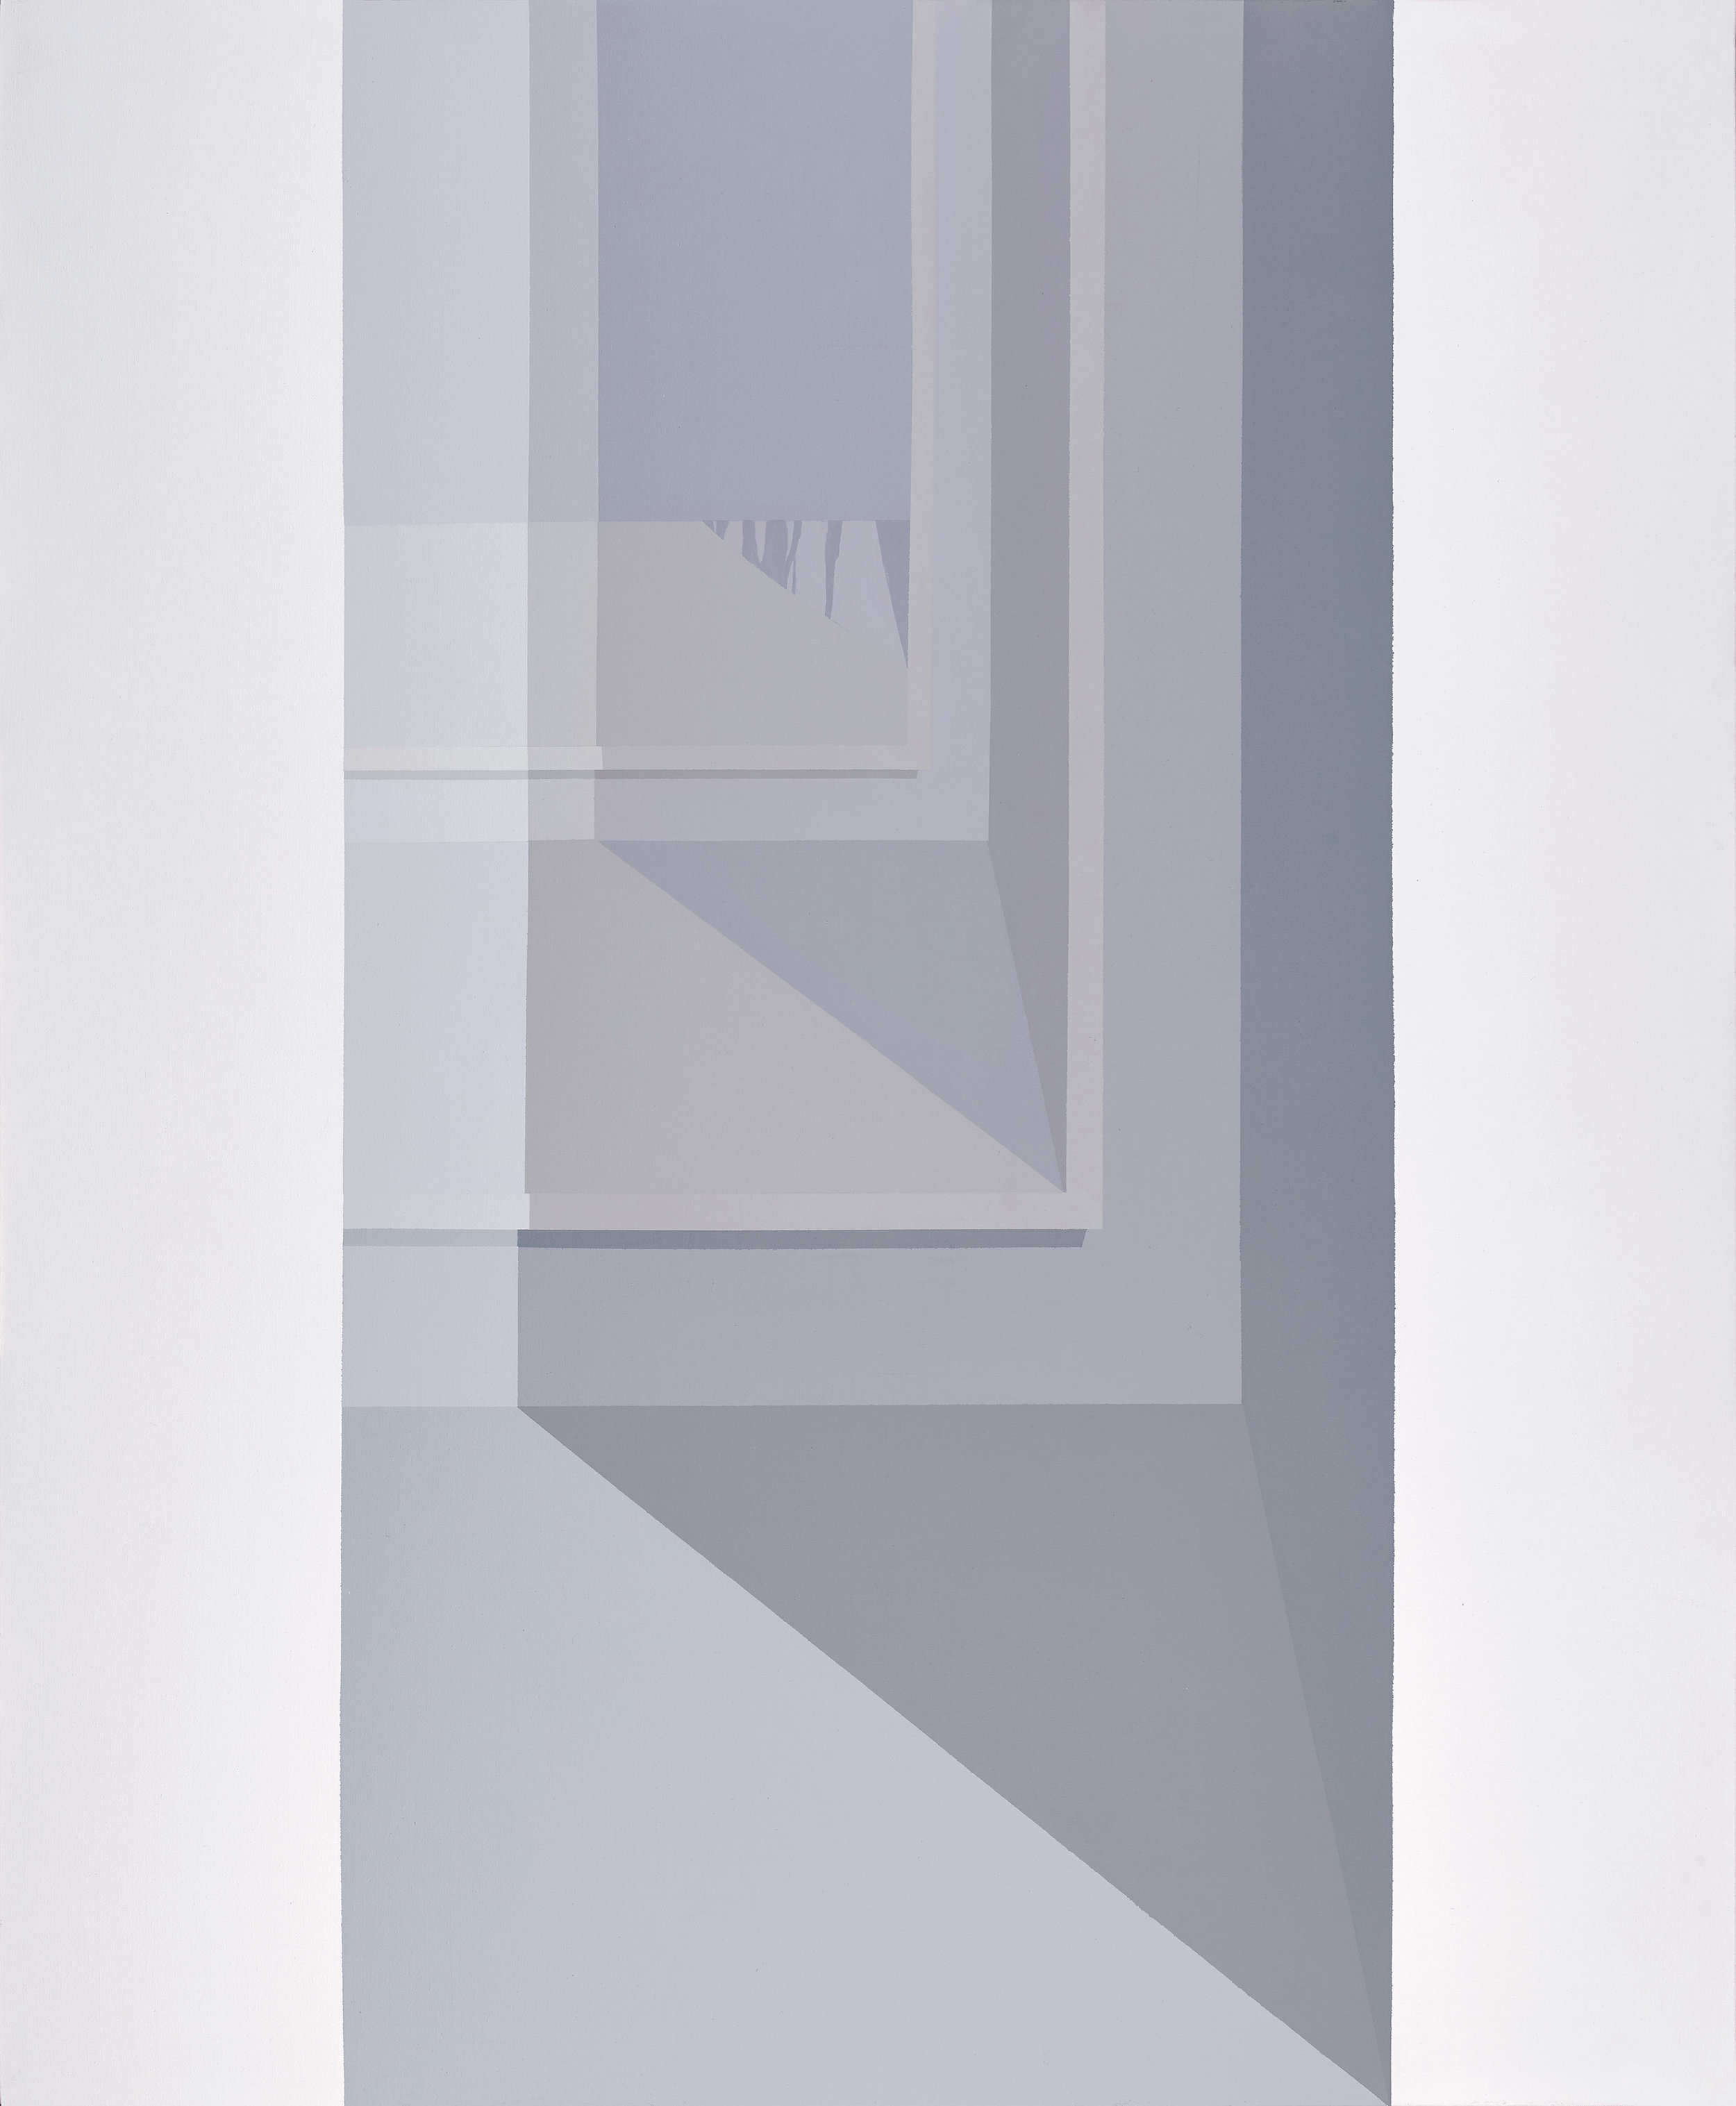 Grey Interior II , 1979  acrylic on canvas 60 x 50 1/4 inches; 152.4 x 127.6 centimeters